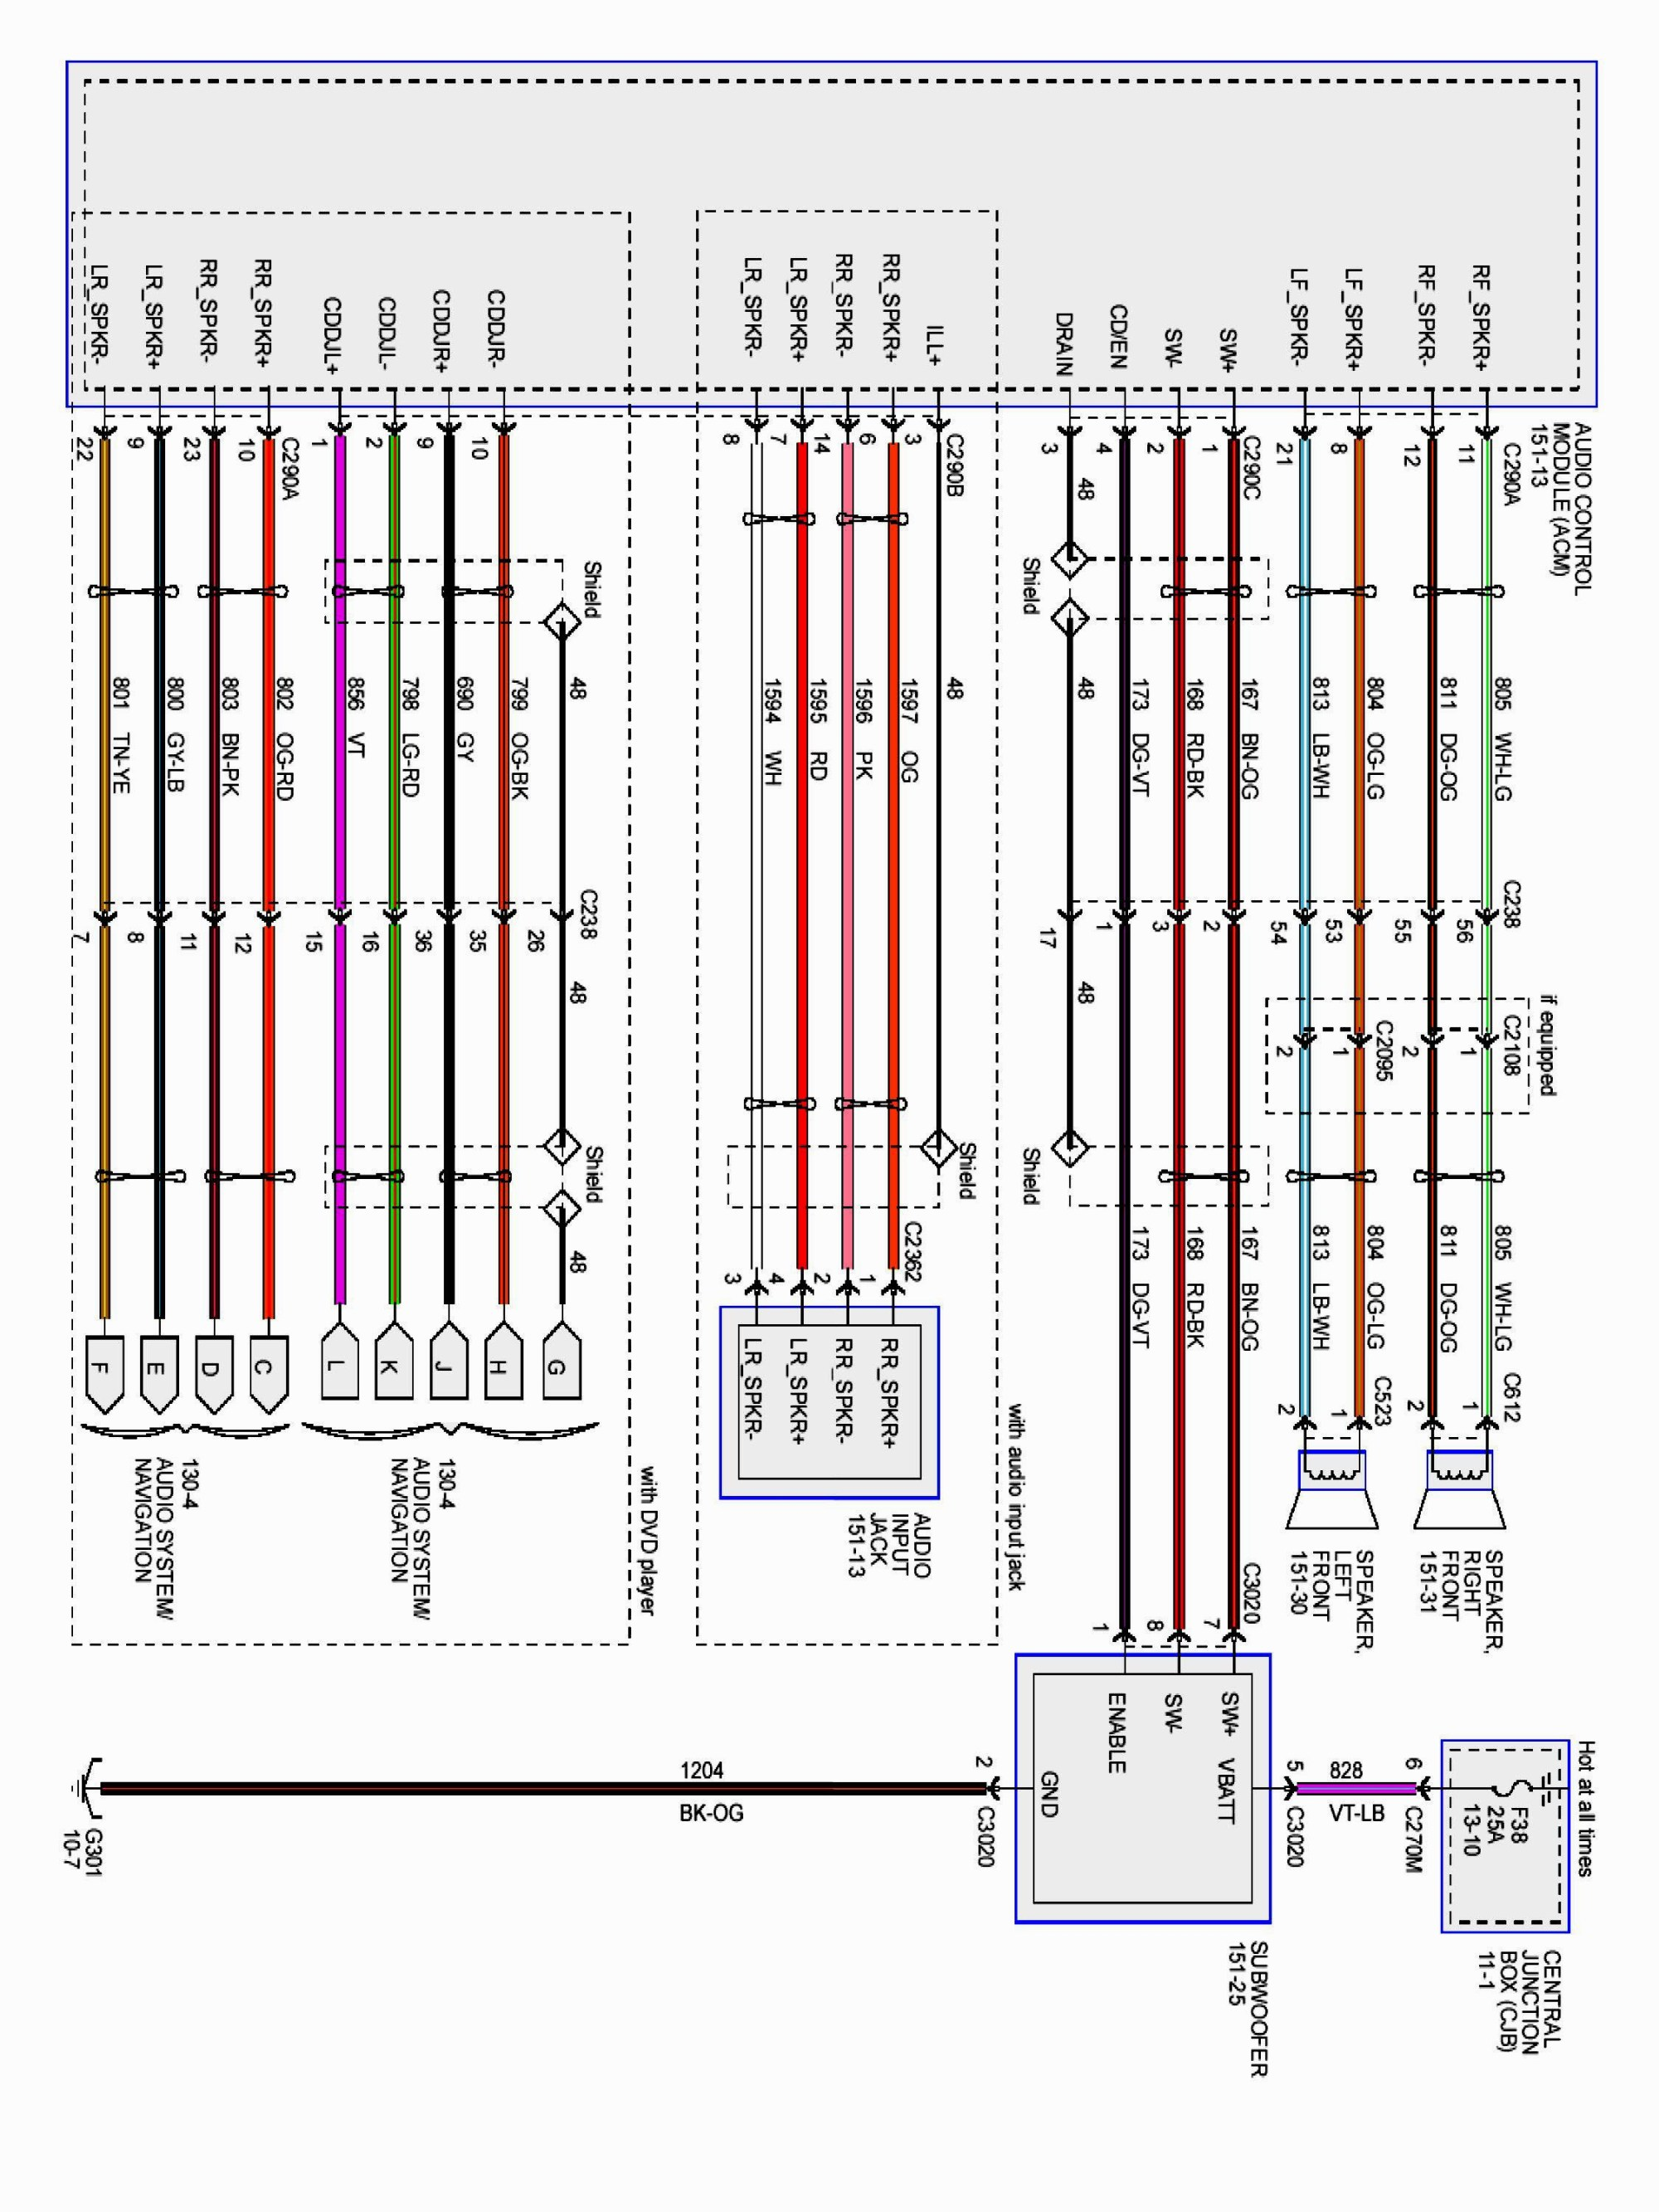 hight resolution of ford econoline radio wiring diagram collection wiring diagram 2001 ford e350 radio f250 for f150